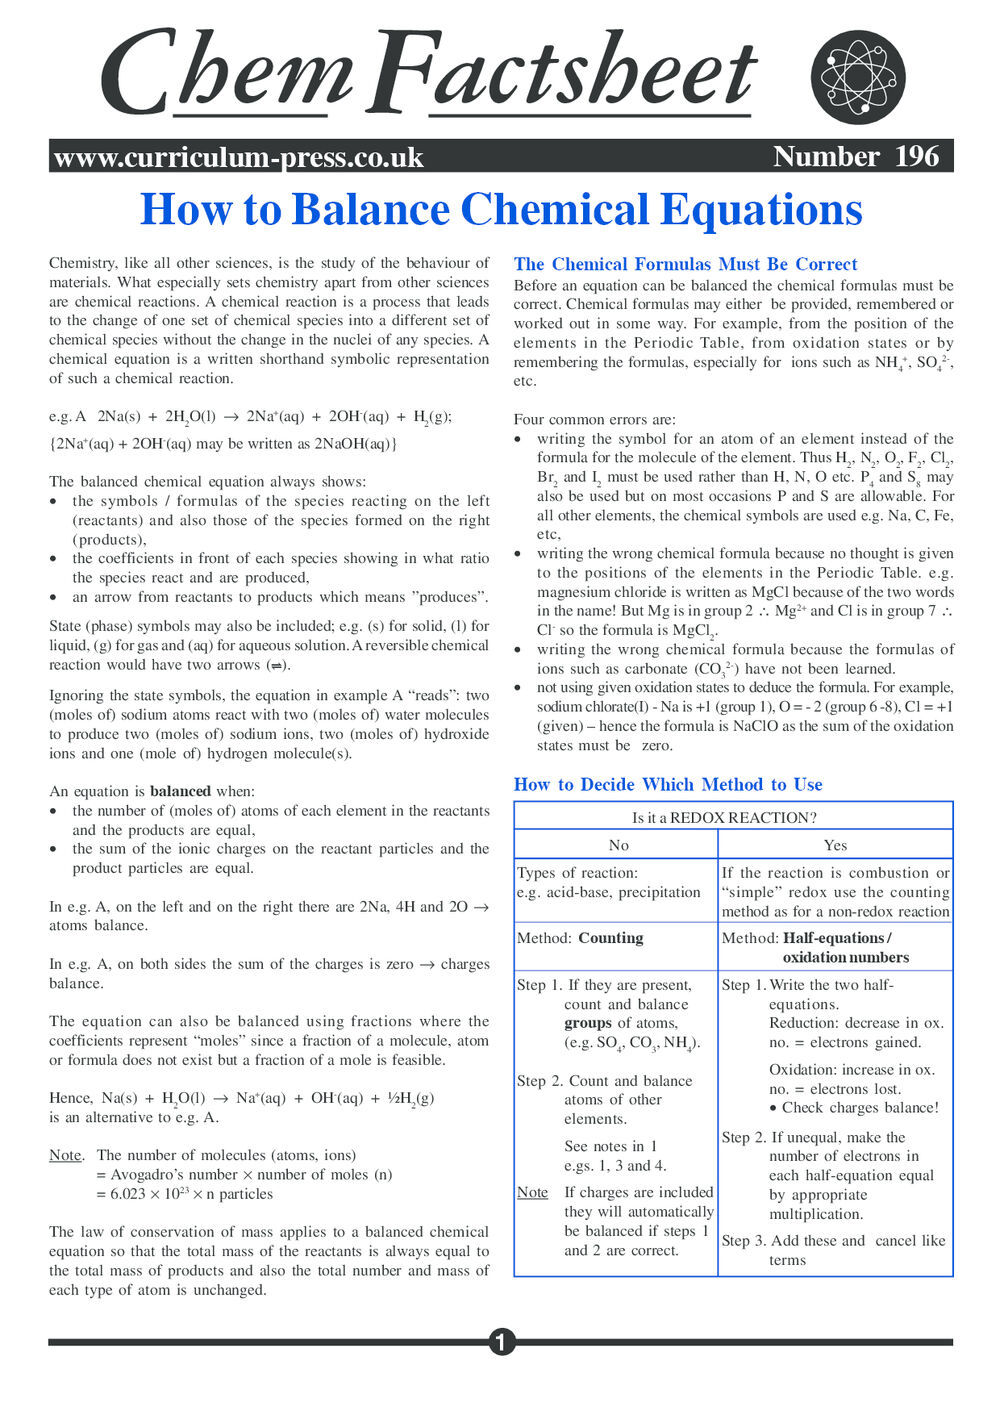 How to Balance Chemical Equations - Curriculum Press